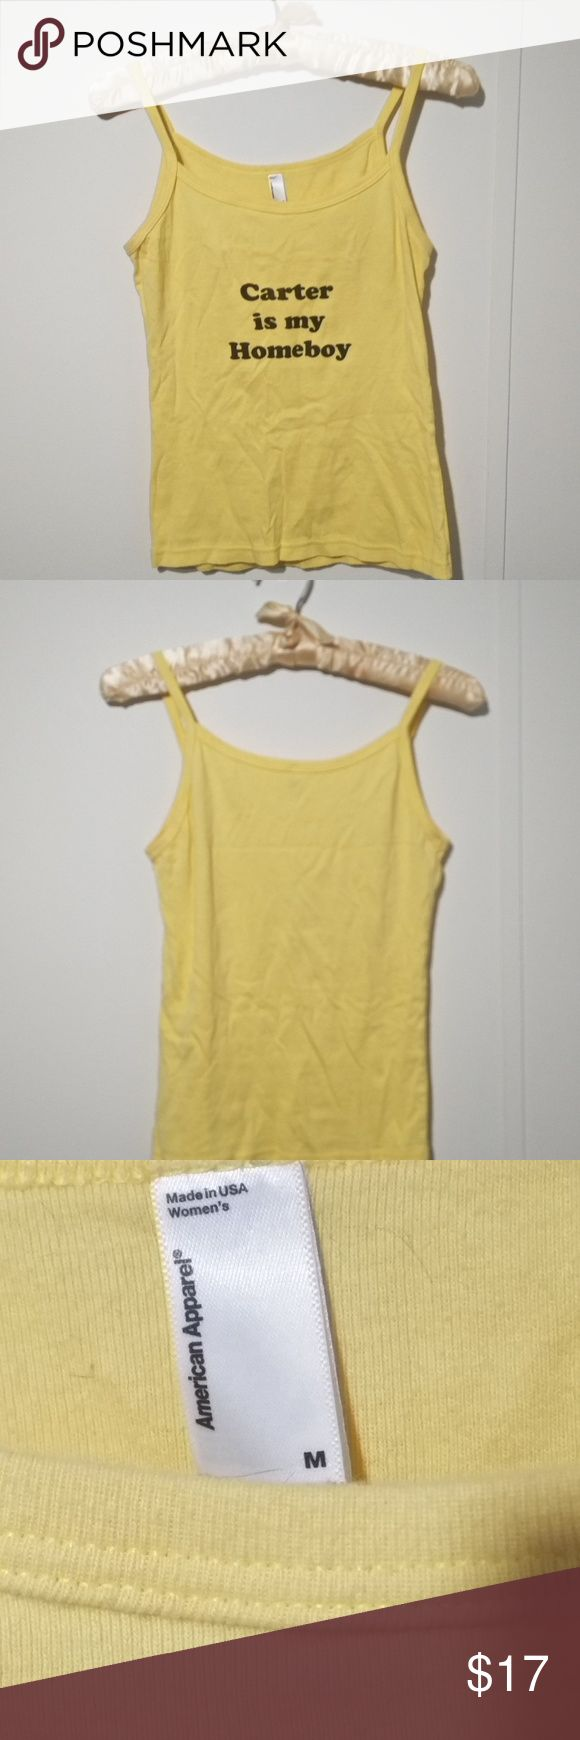 jimmy carter brew beer tank m yellow cami homeboy Jimmy Carter is my Homeboy yellow tank camisole.  Worn only once. Tops Tank Tops